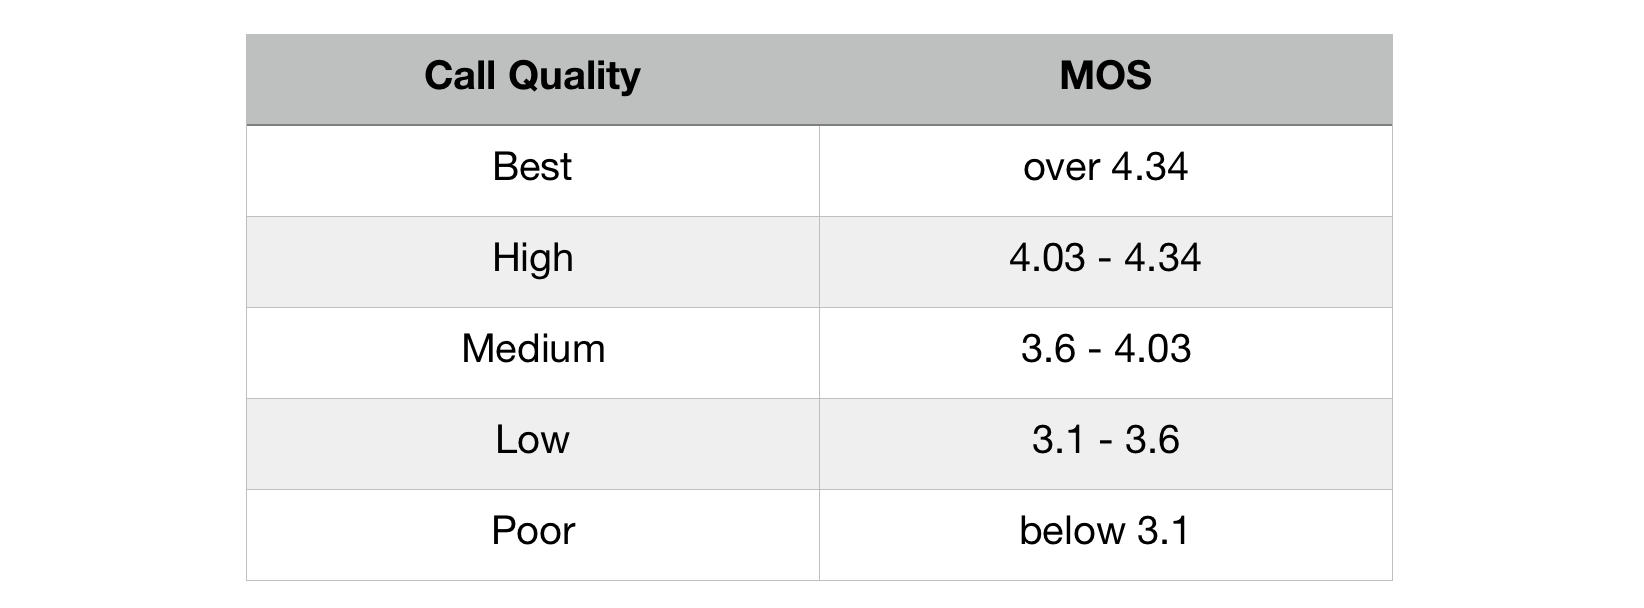 VoIP Quality Table - Measuring VoIP Quality with MOS Score